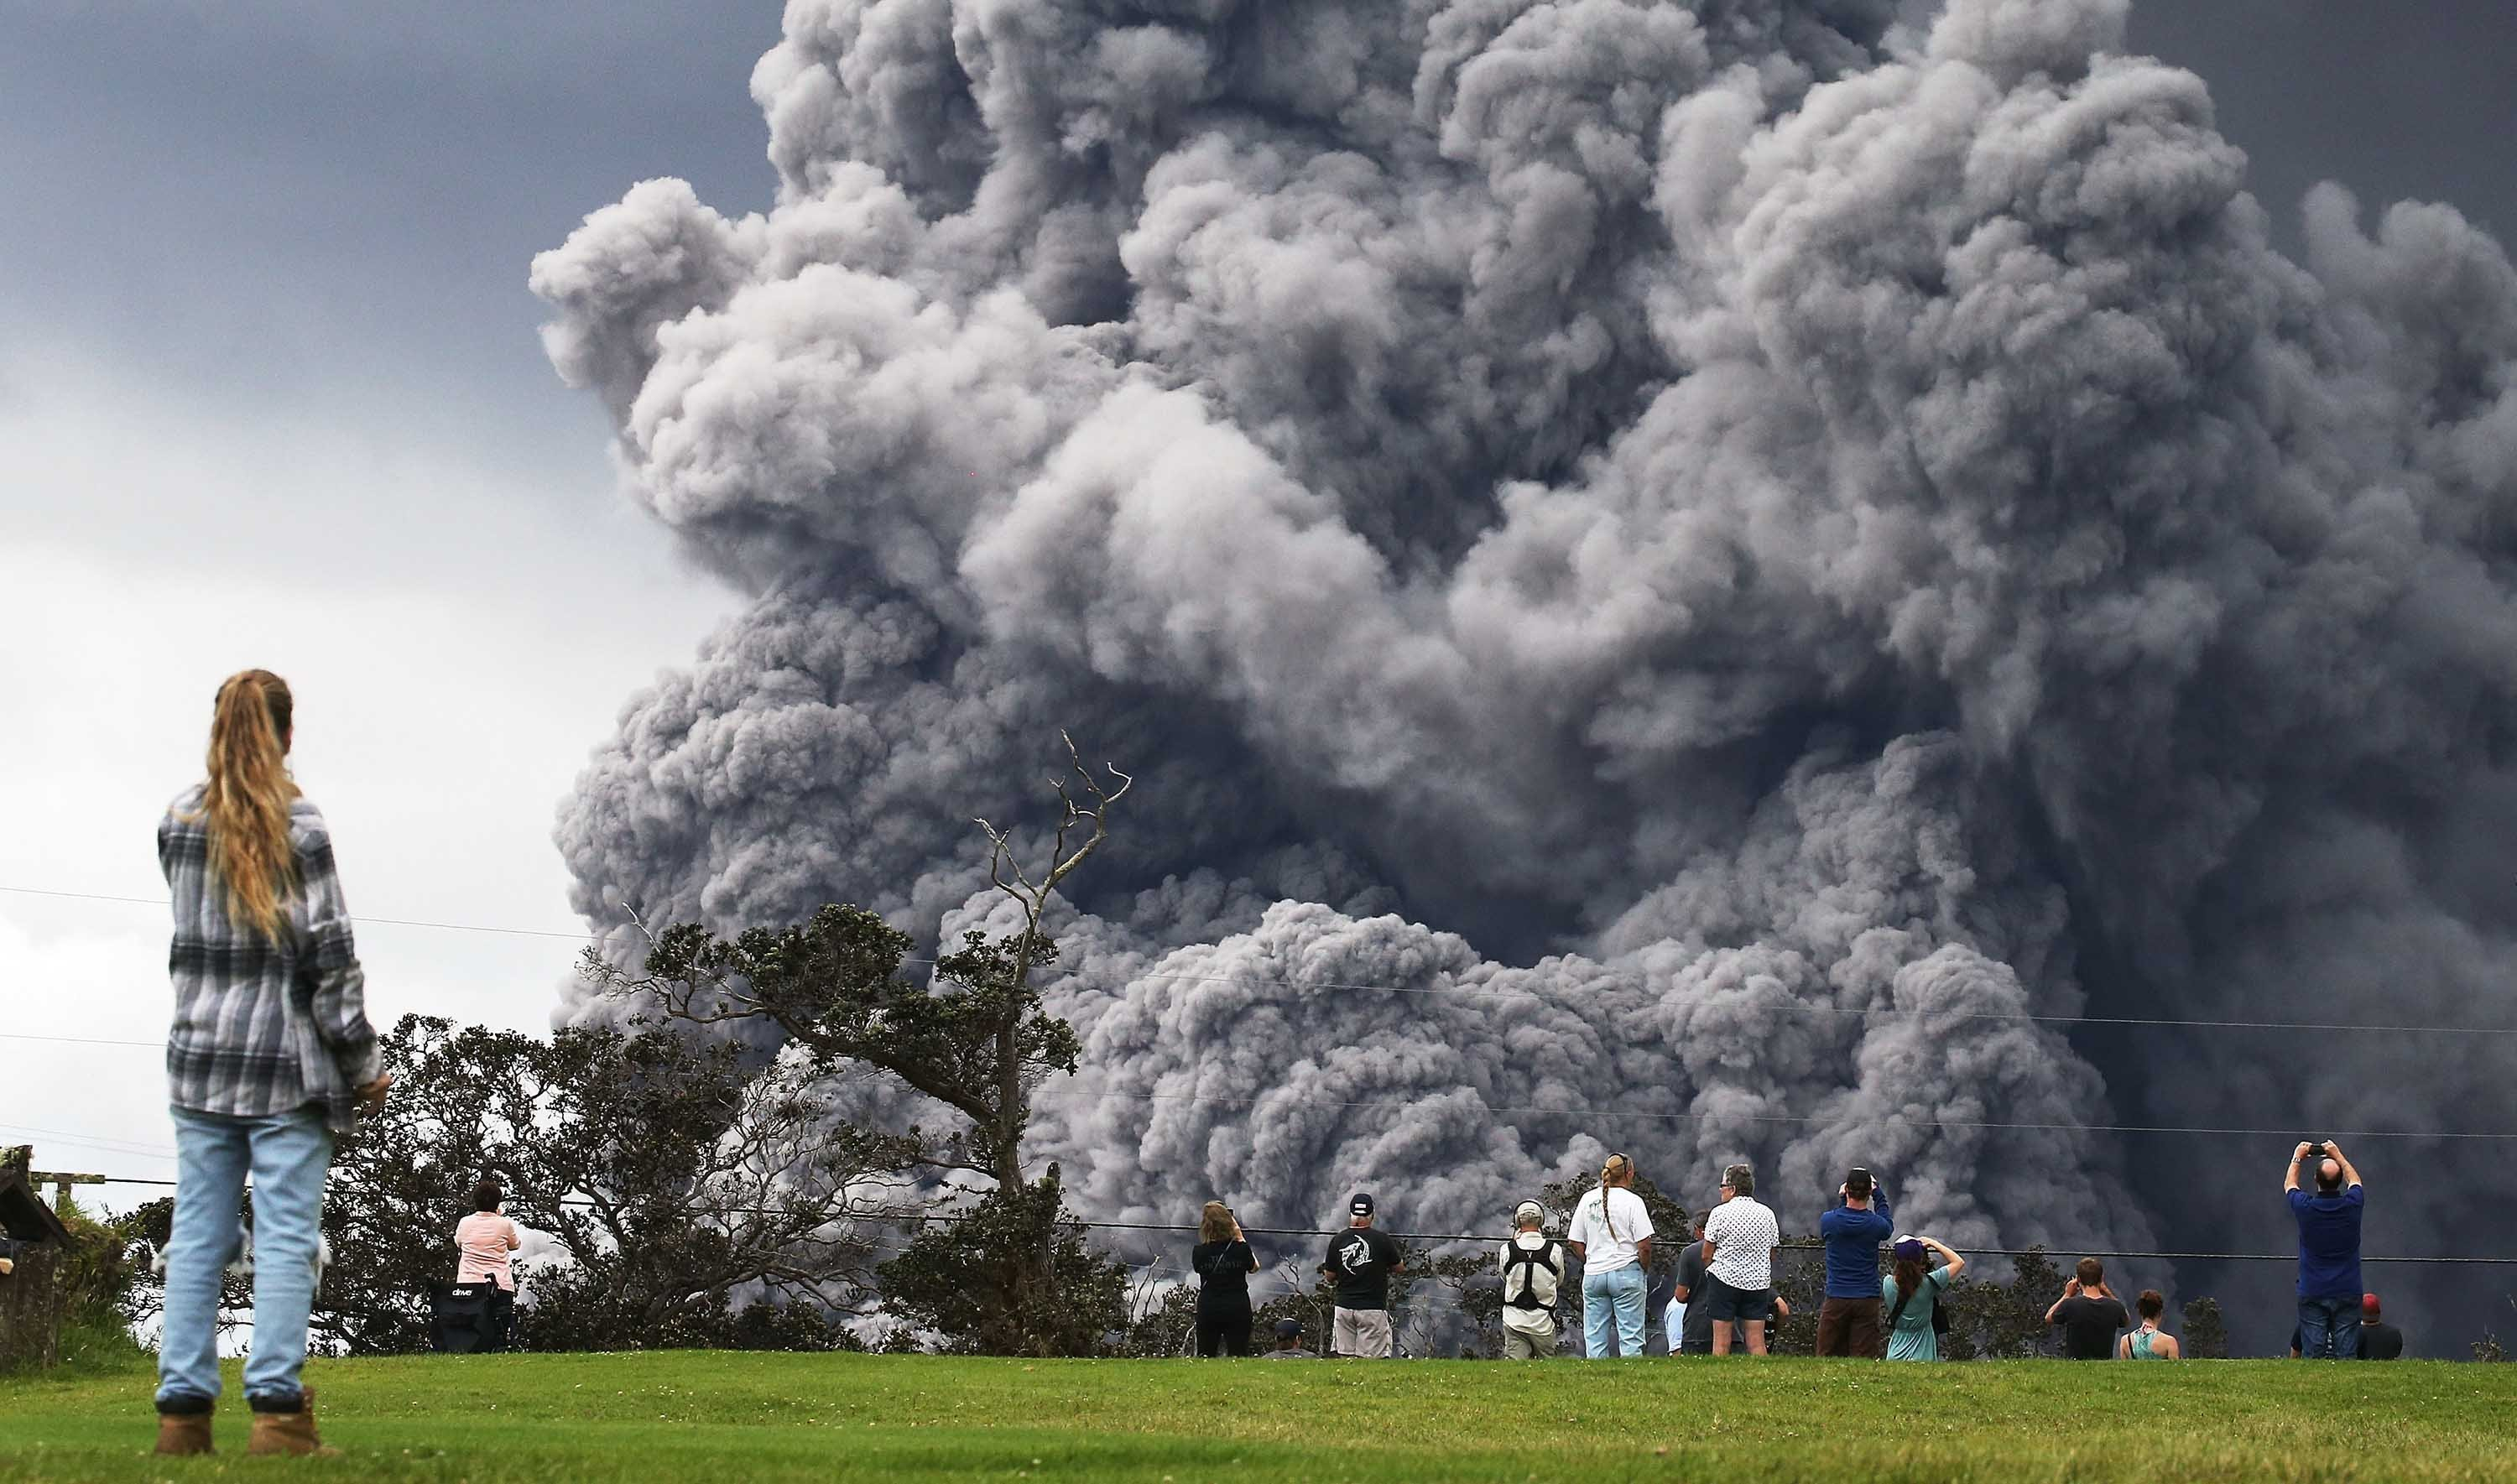 People watch at a golf course as an ash plume rises in the distance from the Kilauea volcano on Hawaii's Big Island on Tuesday.